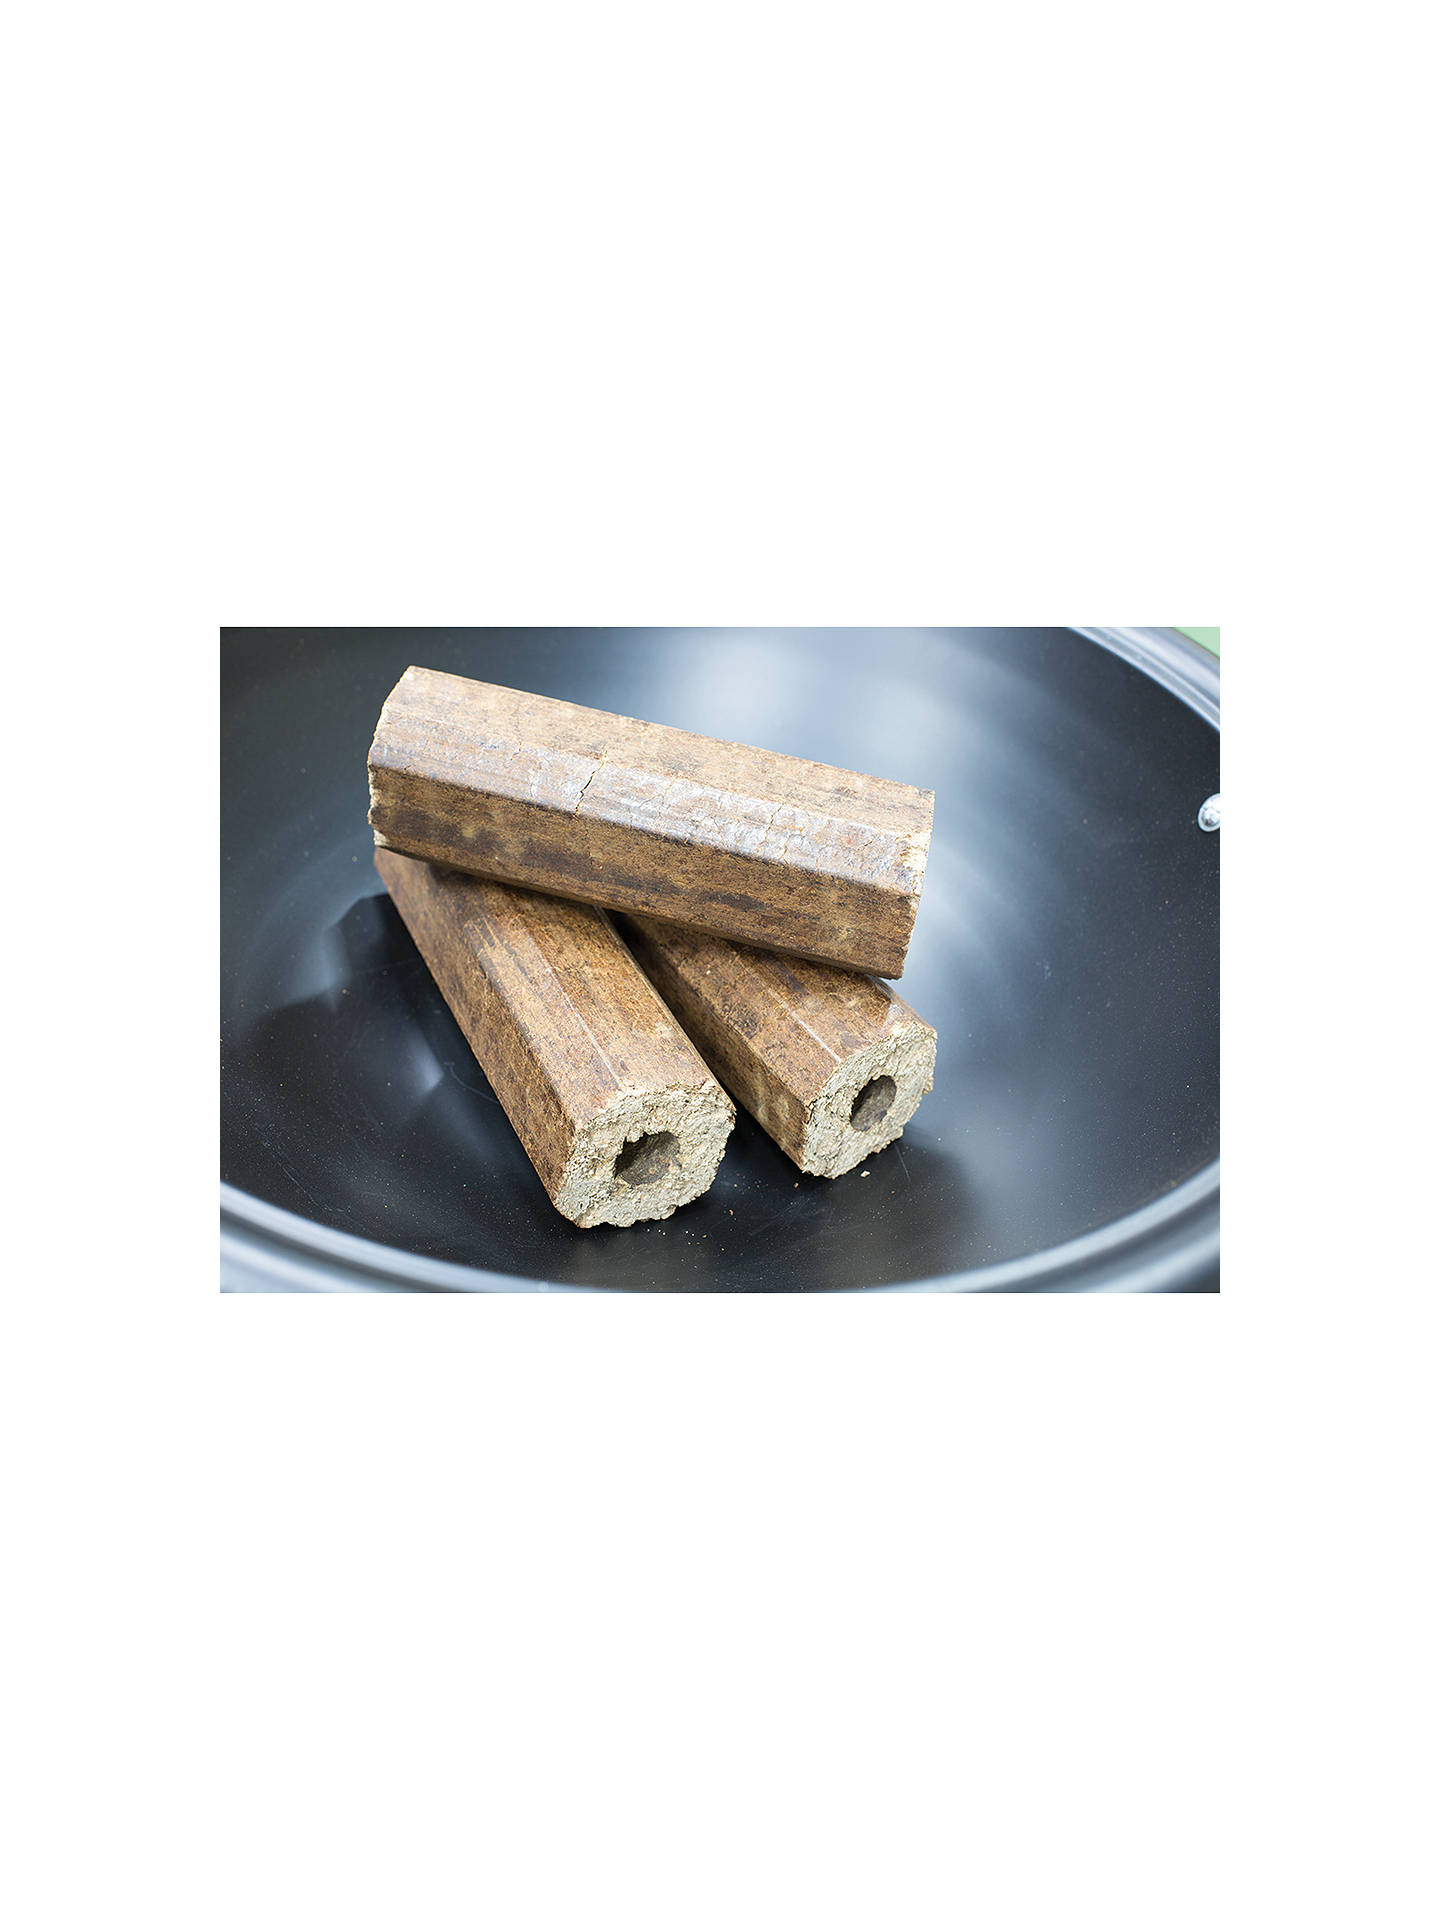 BuyLa Hacienda Heatblox Logs, Pack of 12 Online at johnlewis.com